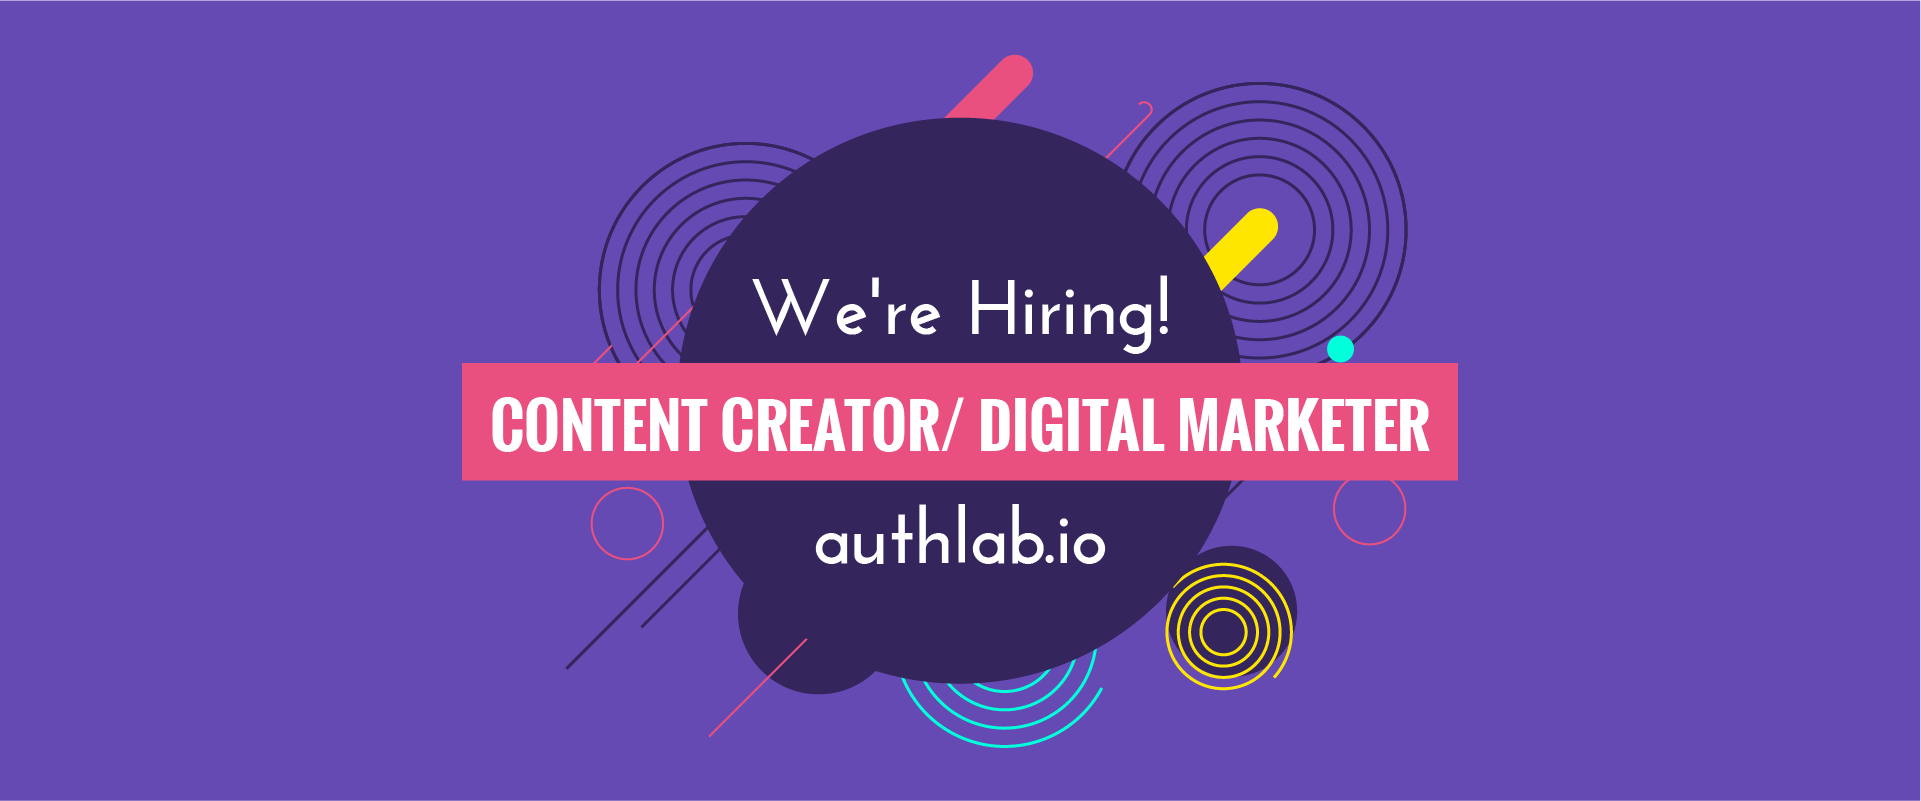 content_marketer_recruitment_authlab_july_2019